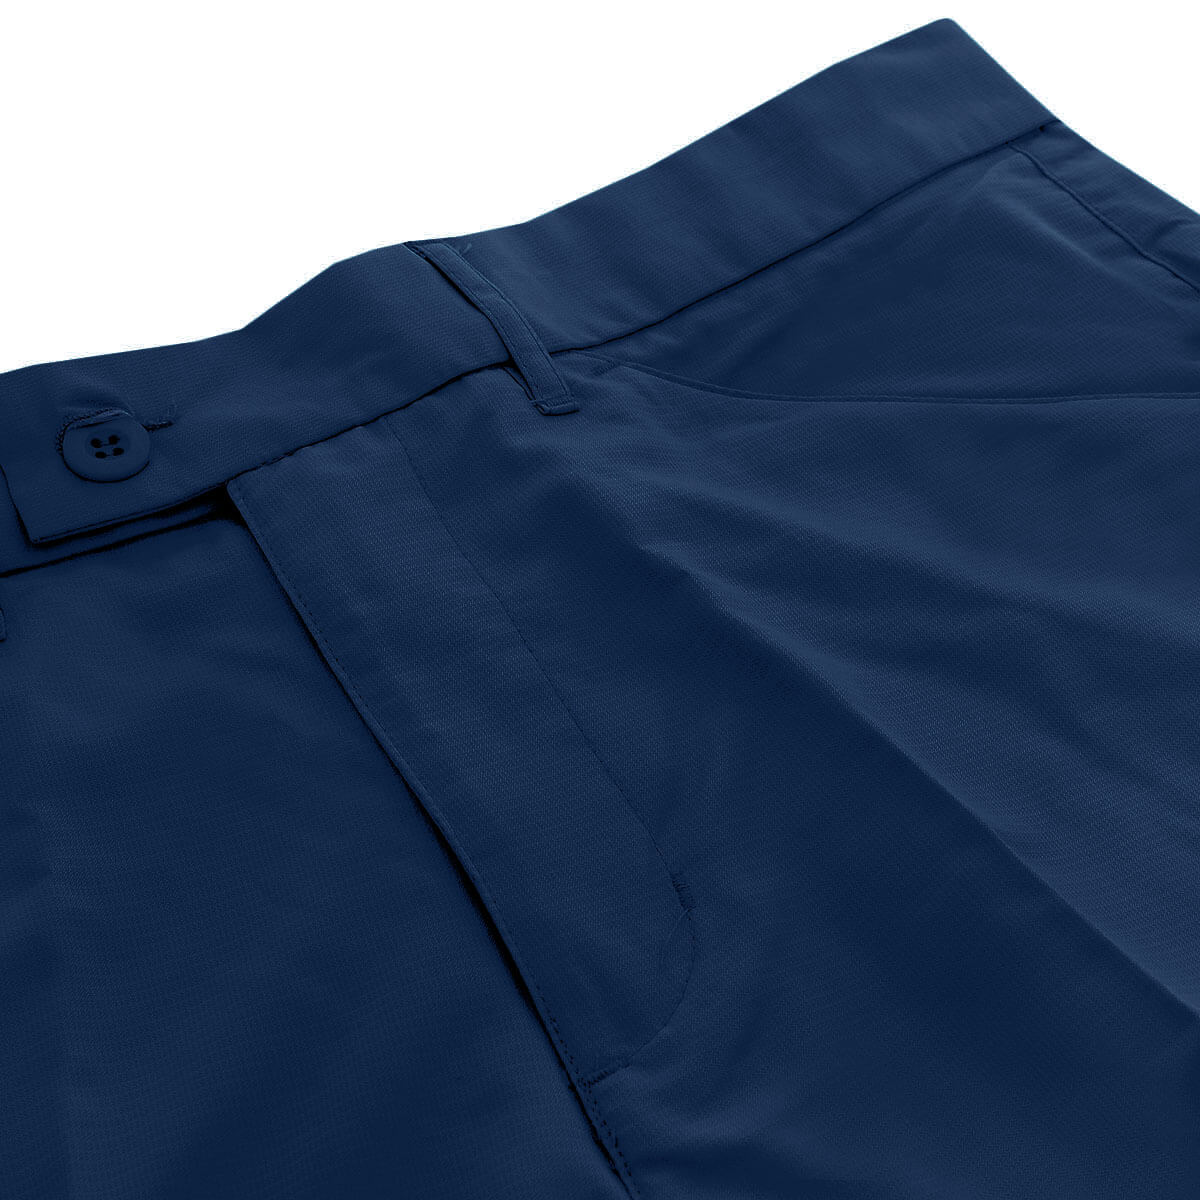 Island-Green-Breathable-Tapered-Slim-Fit-Mens-Golf-Trousers-47-OFF-RRP thumbnail 13